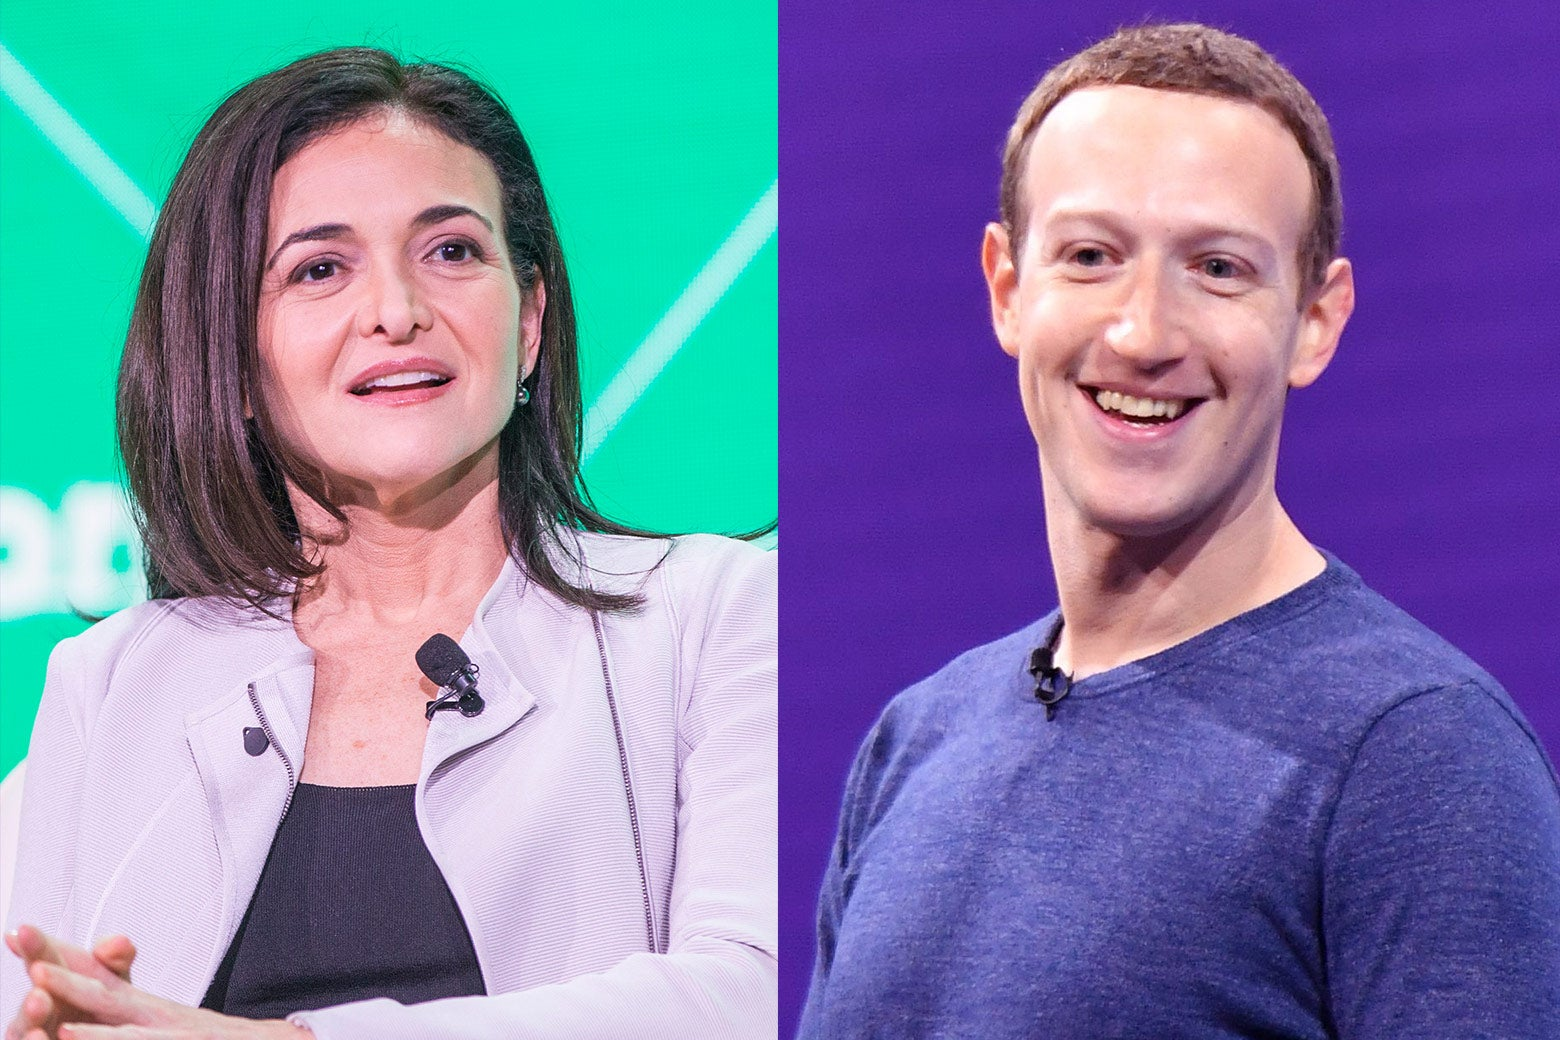 slate.com - Siva Vaidhyanathan - Facebook Is a Normal Sleazy Company Now